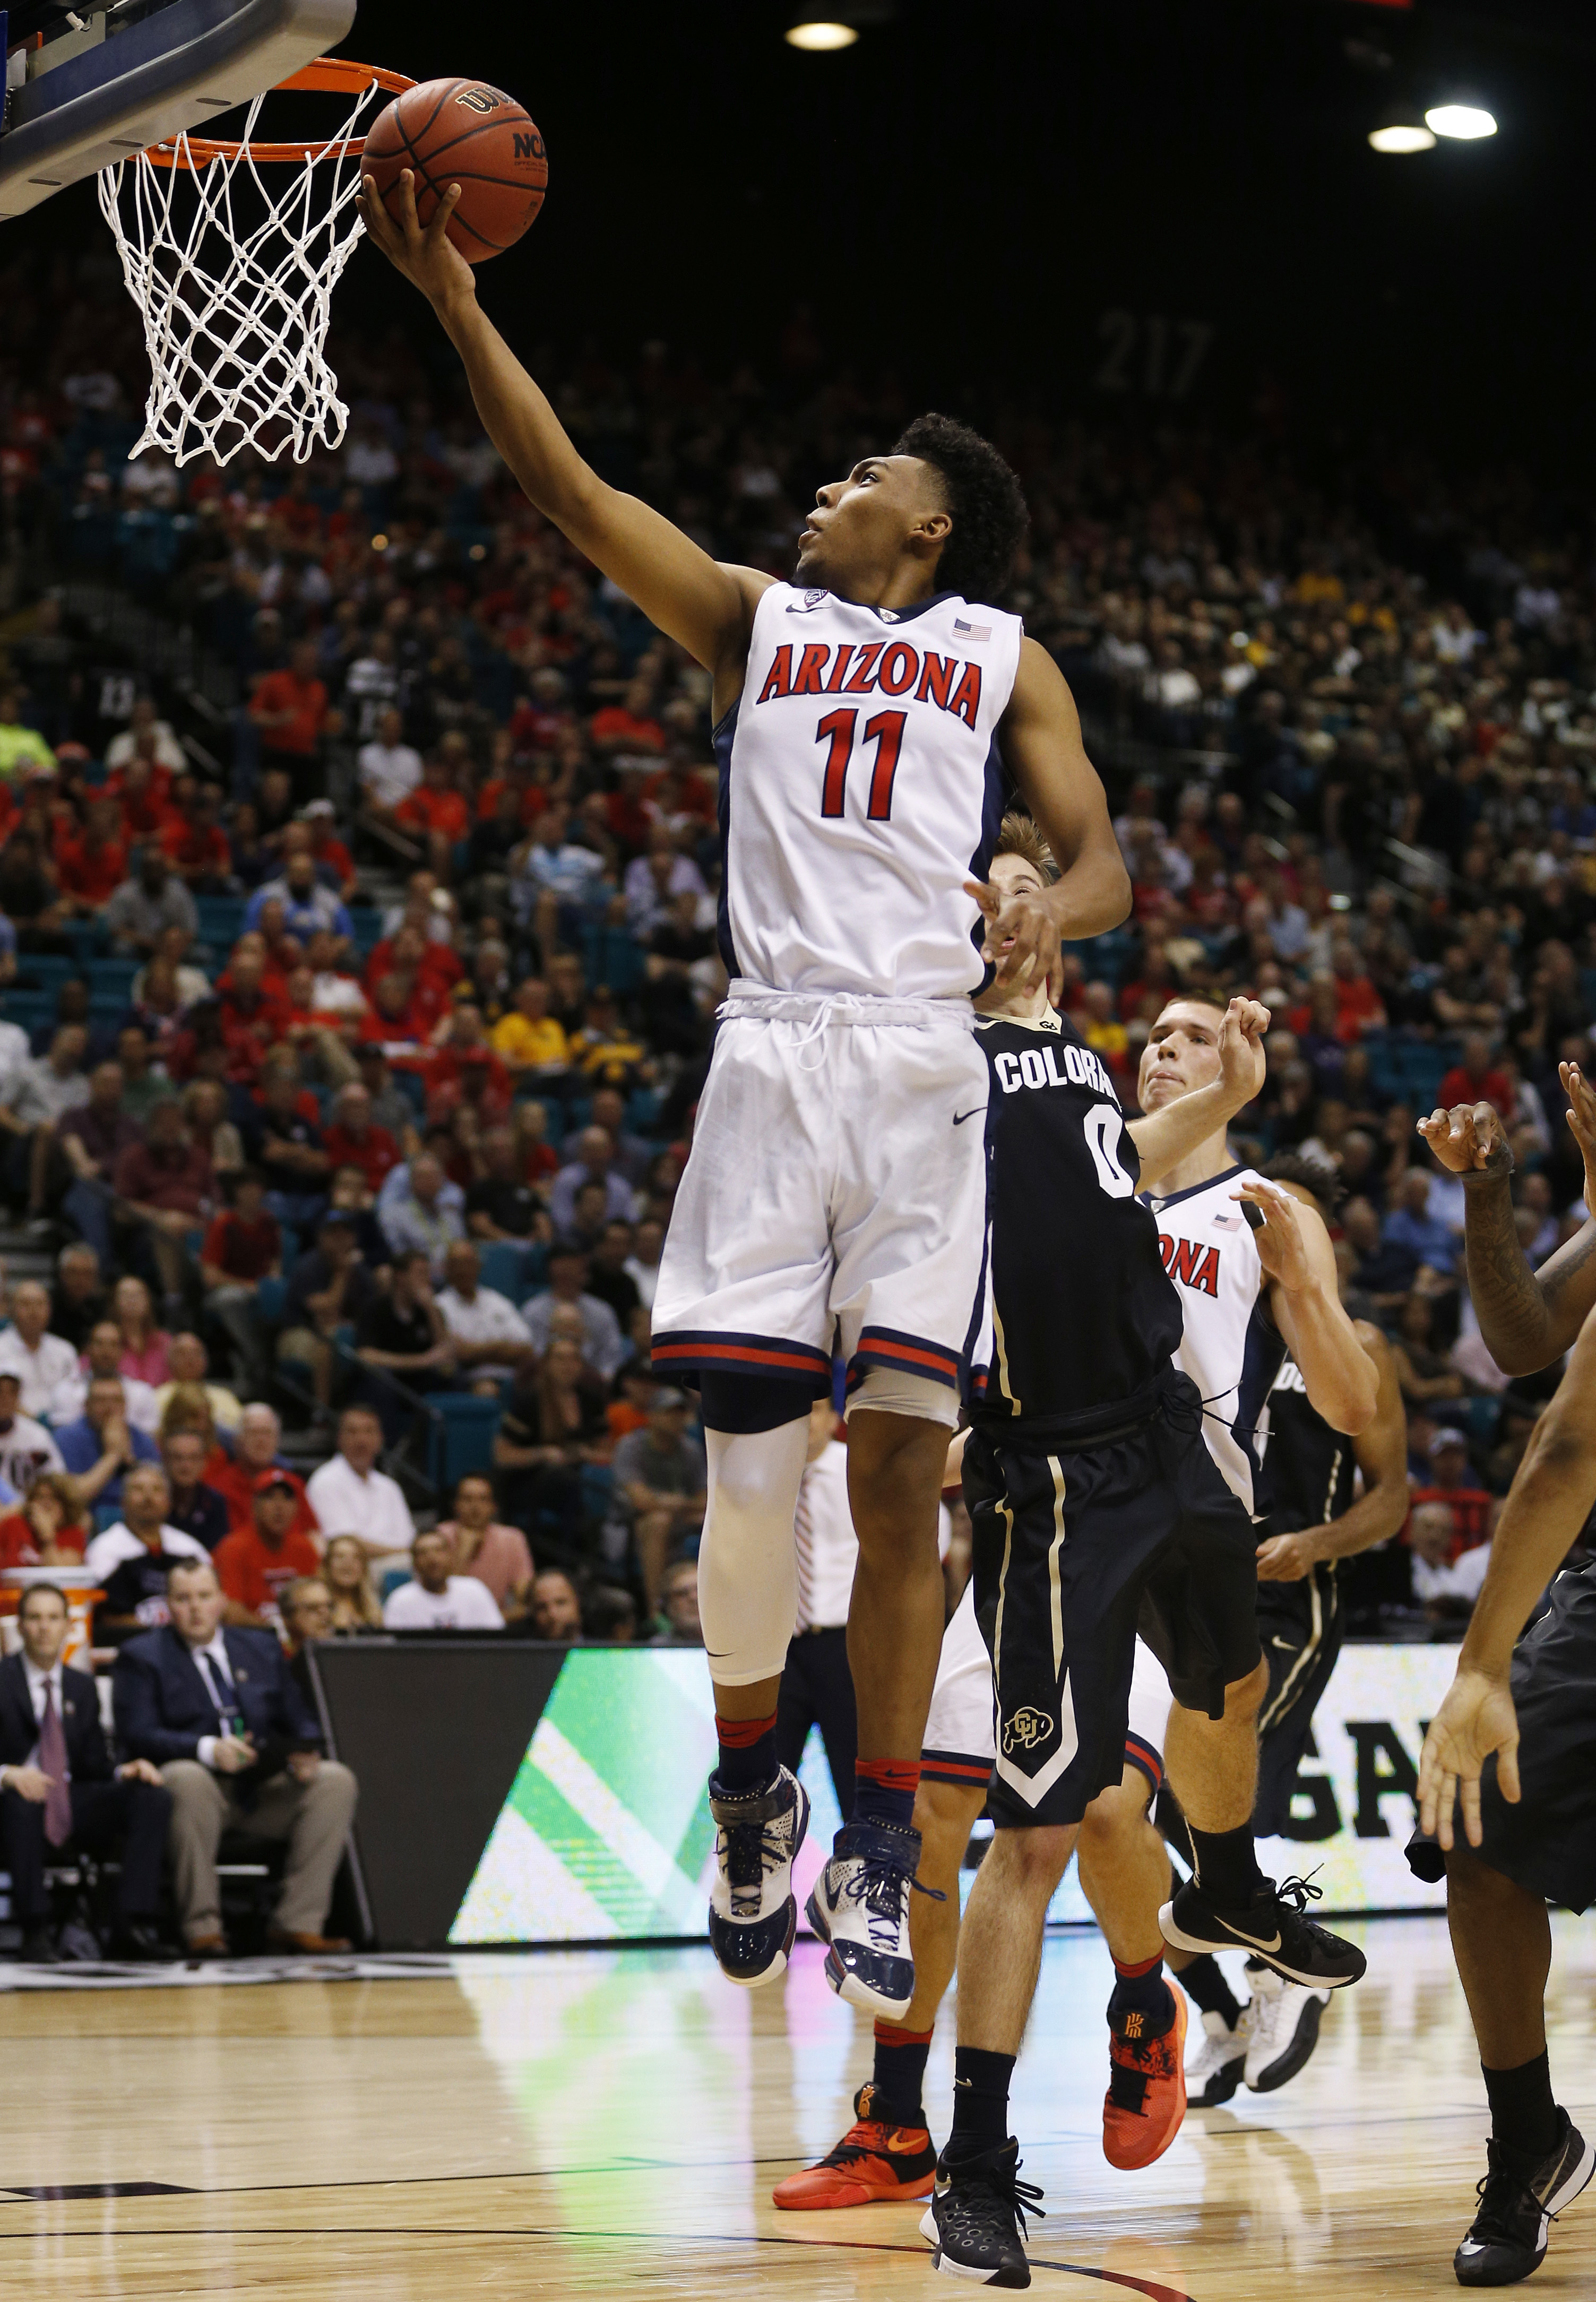 Arizona guard Allonzo Trier shoots against Colorado during the second half of an NCAA college basketball game in the quarterfinal round of the Pac-12 men's tournament Thursday, March 10, 2016, in Las Vegas. Arizona won 82-78. (AP Photo/John Locher)